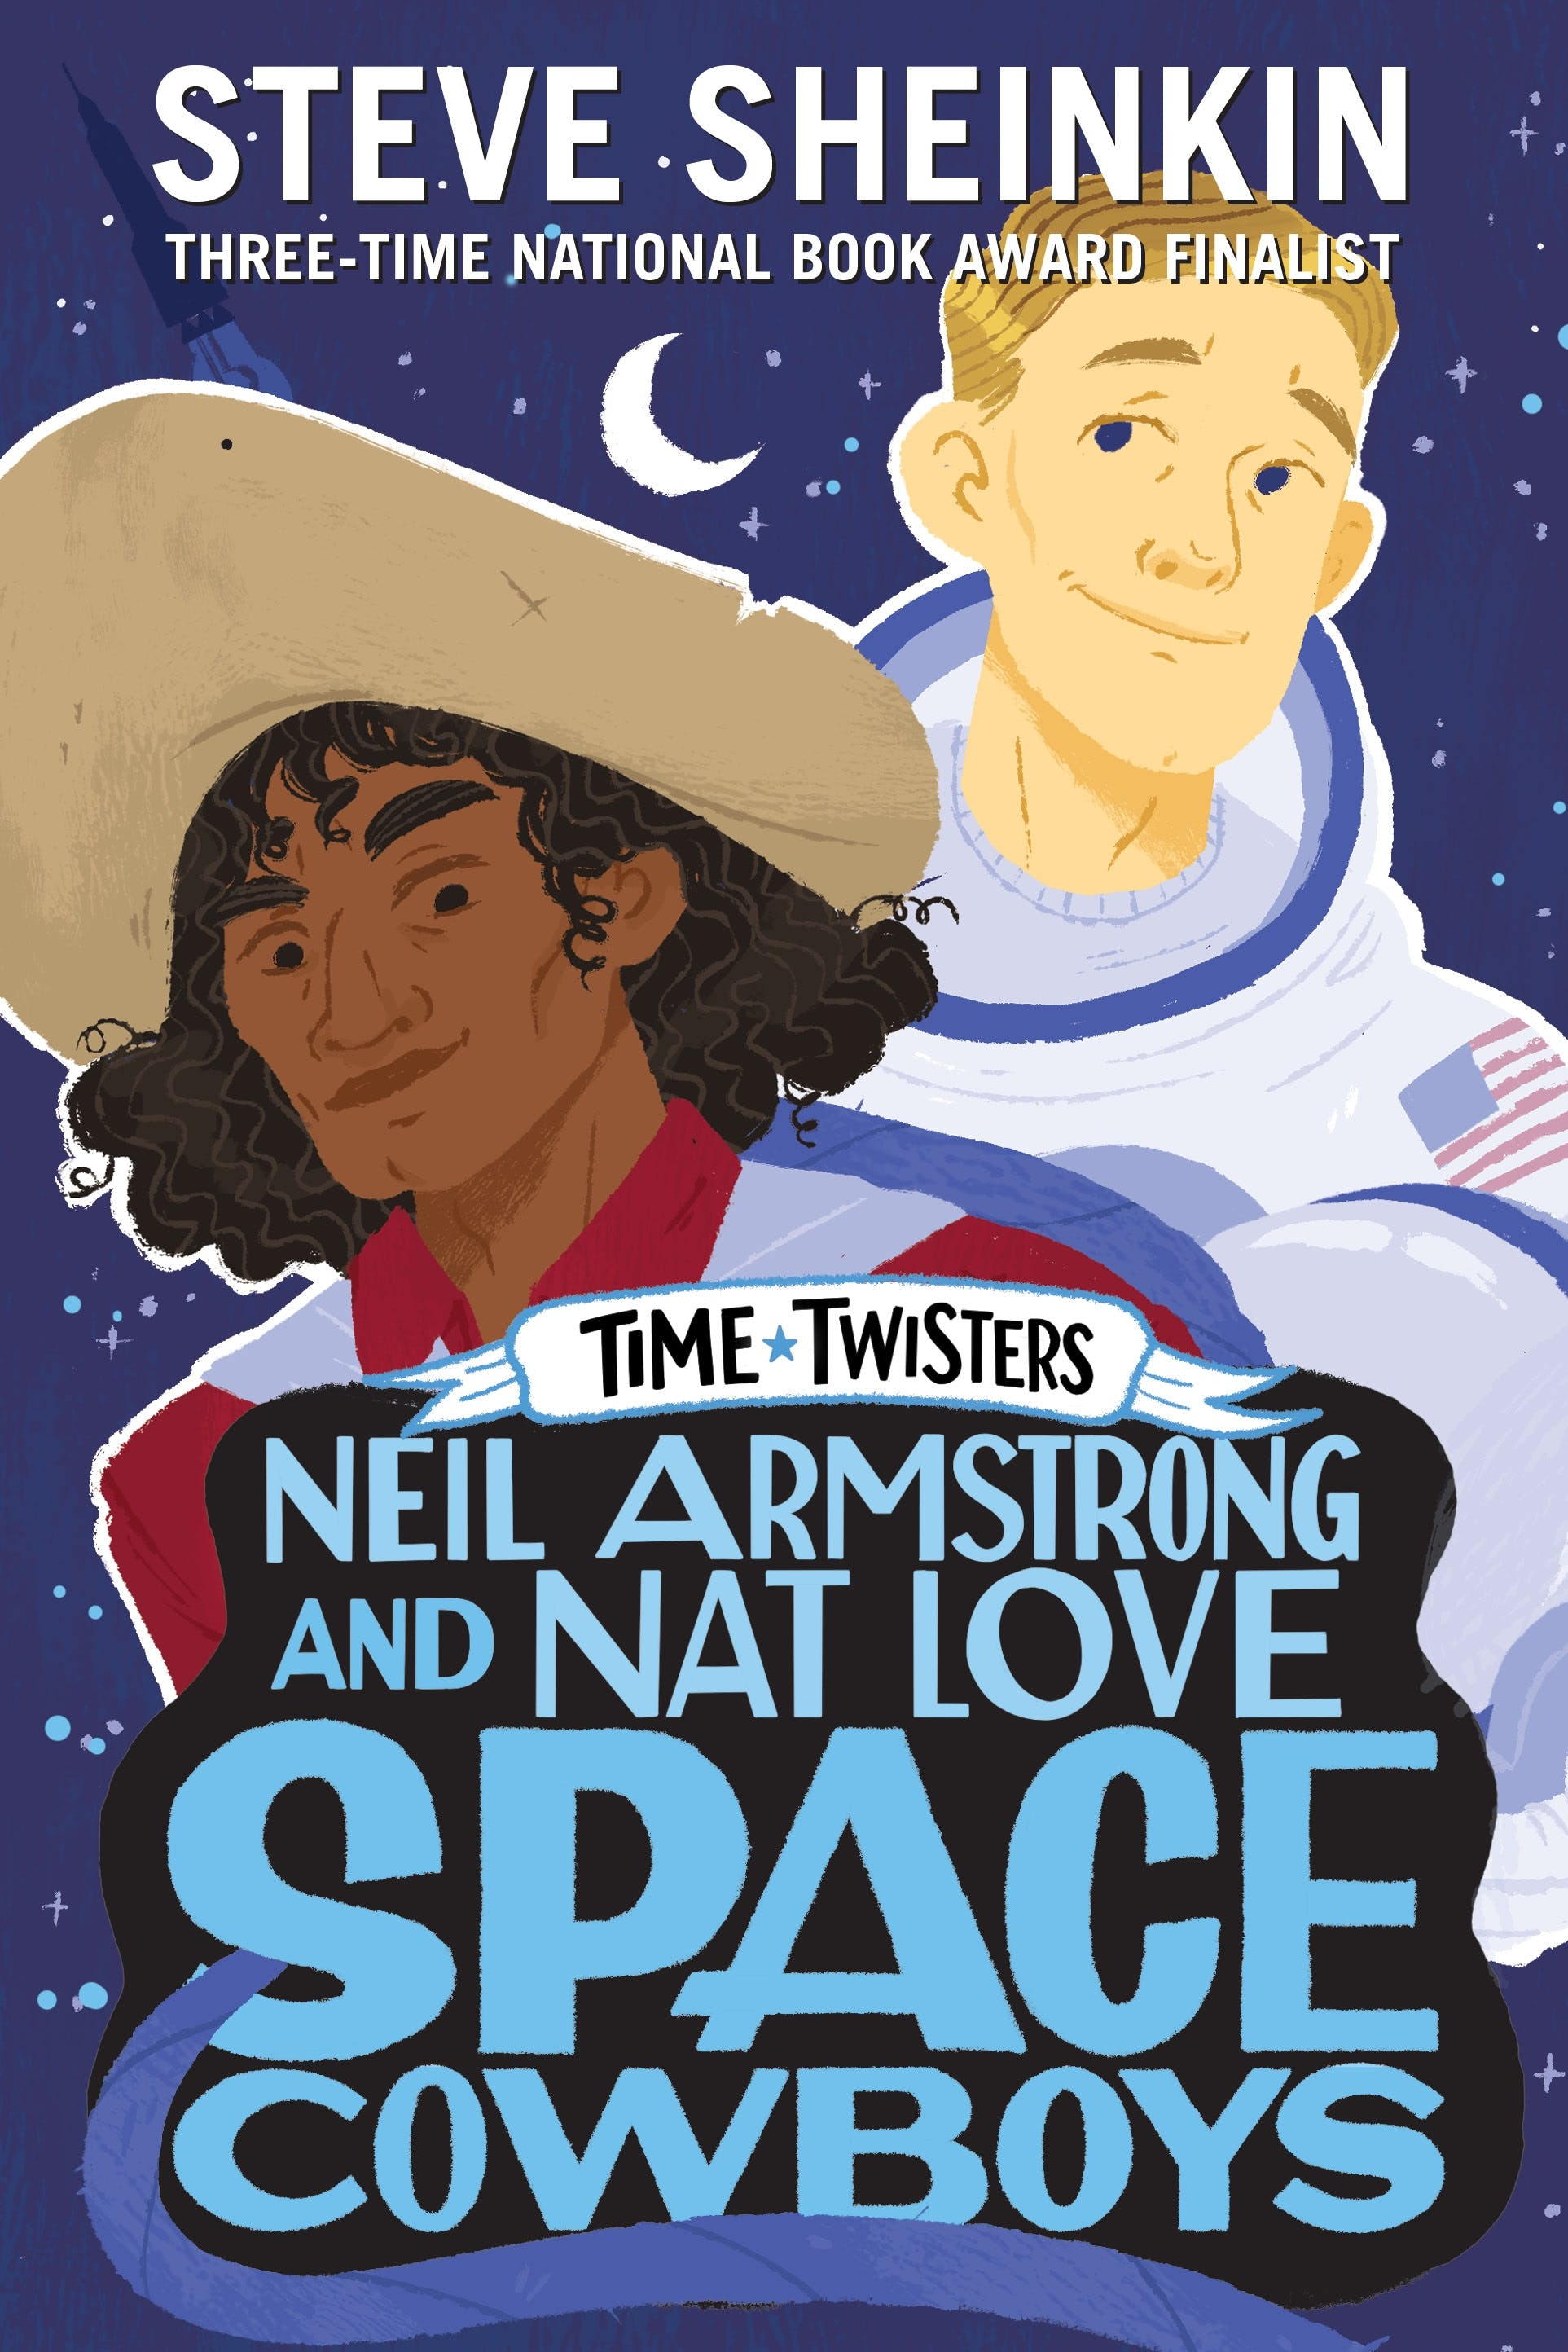 Image of Neil Armstrong and Nat Love, Space Cowboys